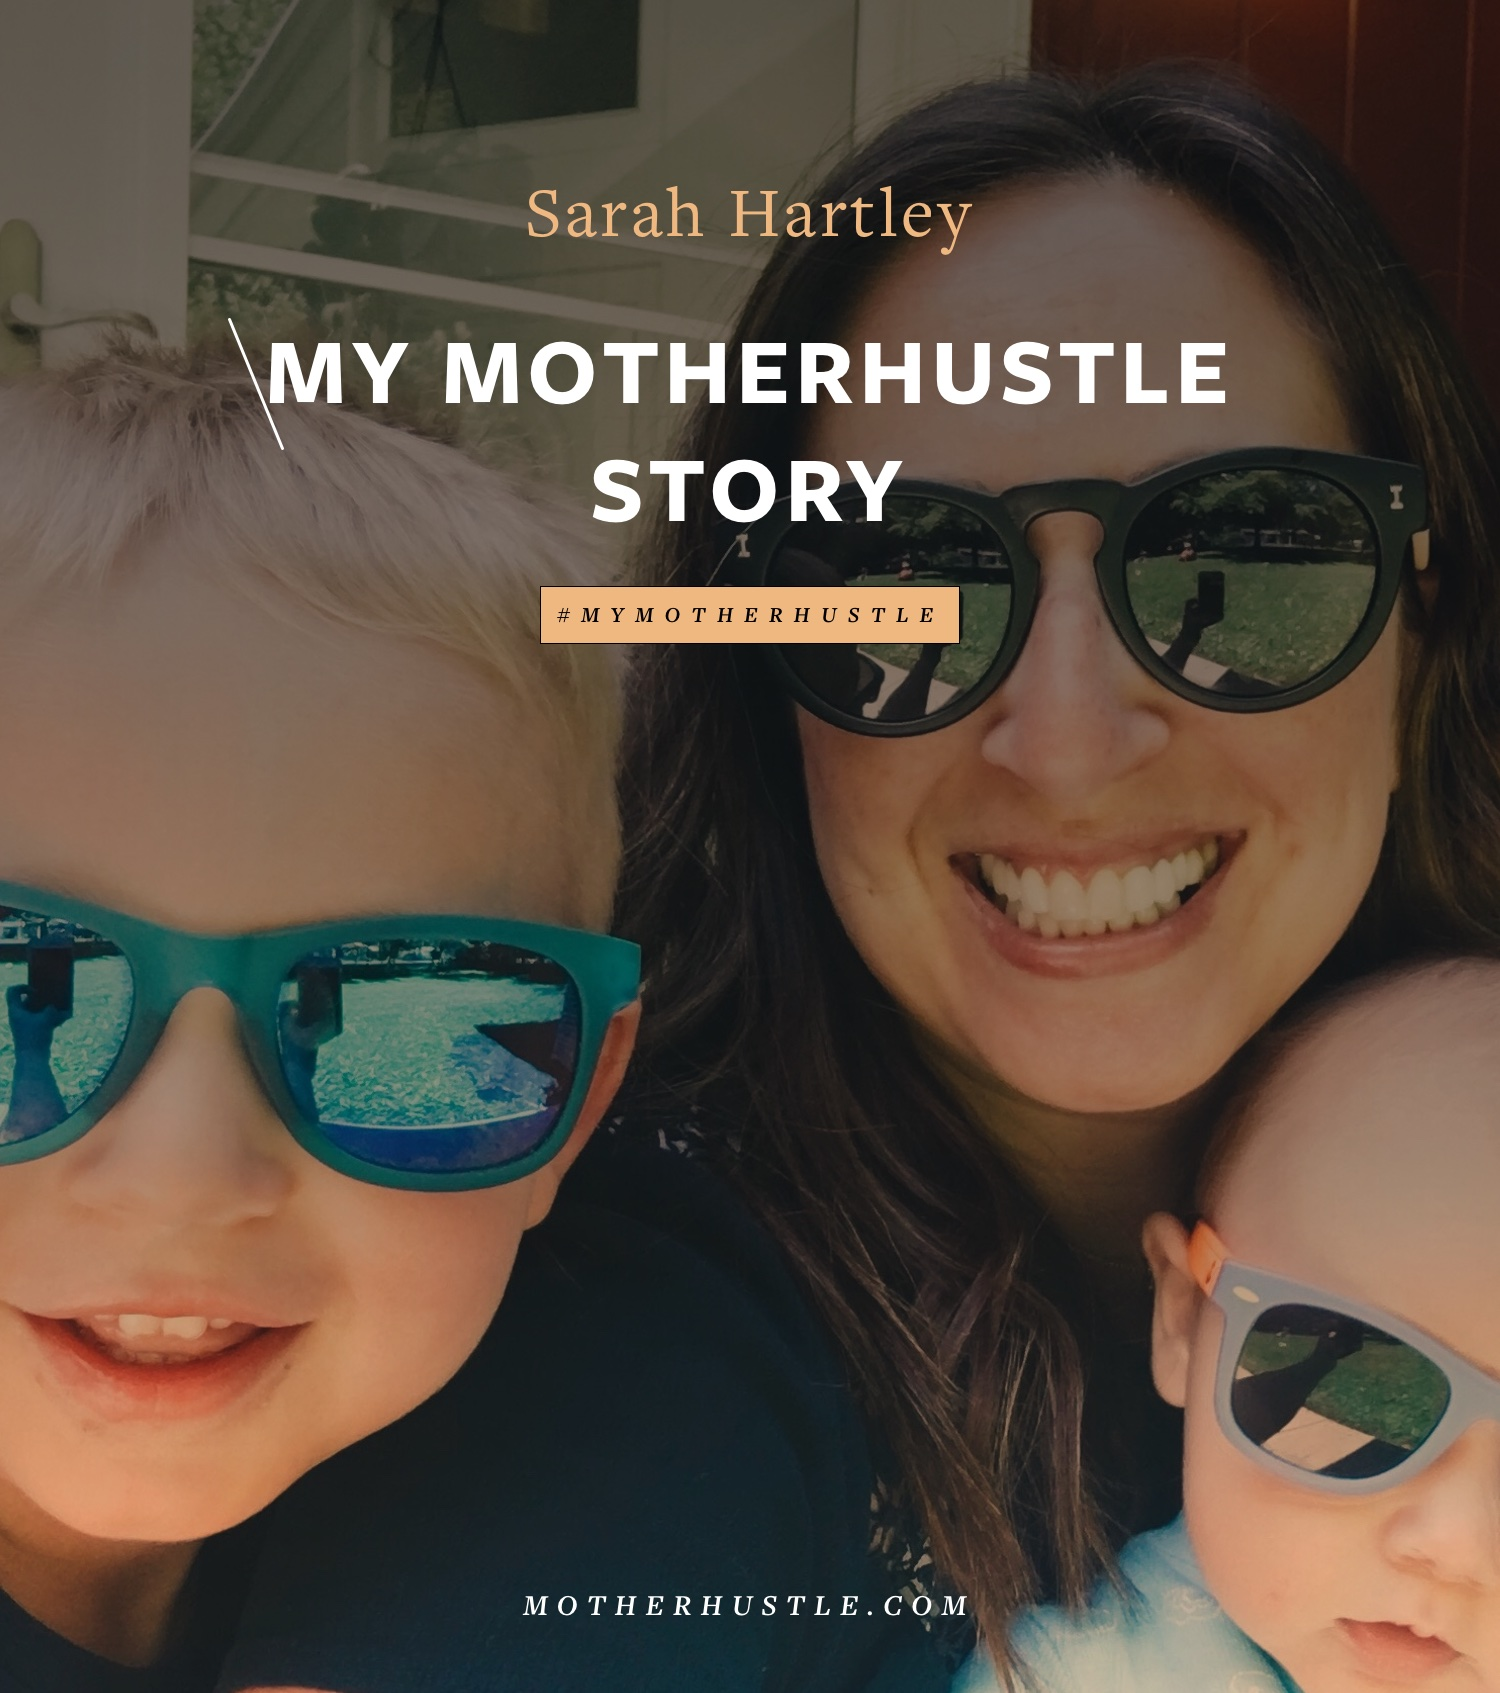 MyMotherHustleStory - Sarah Hartley